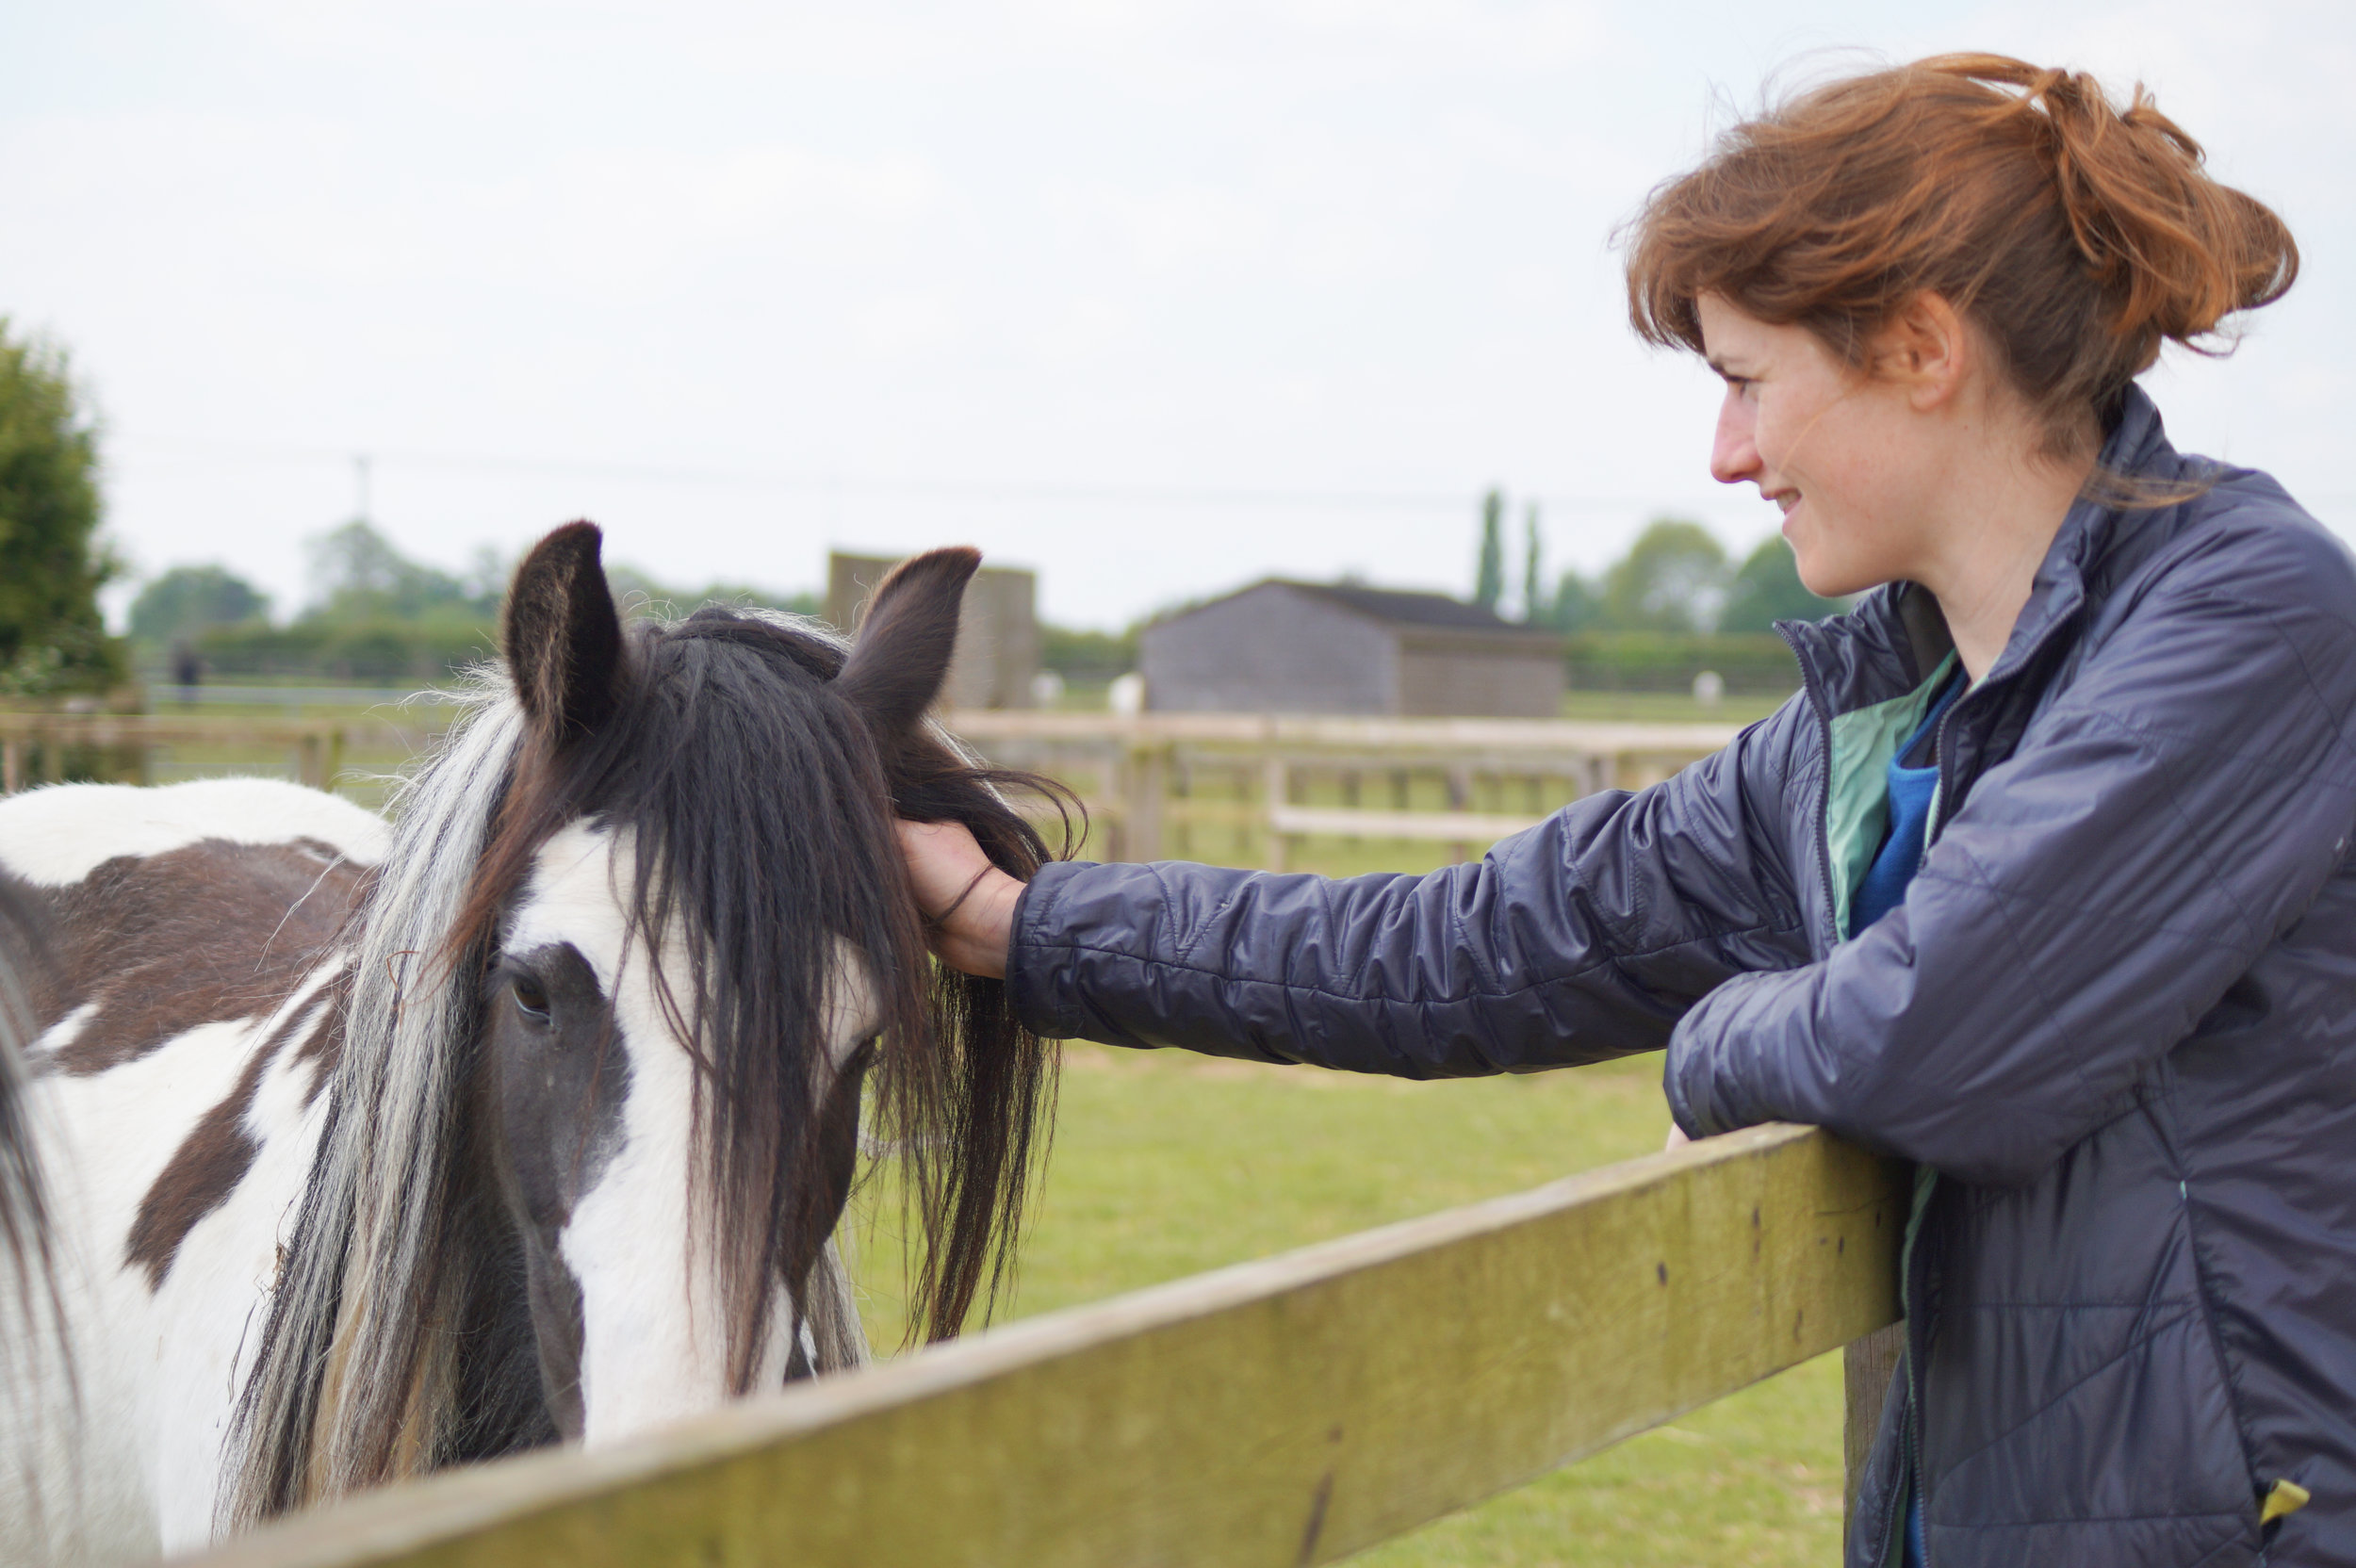 The open day will give the public the chance to meet some of the rescued horses